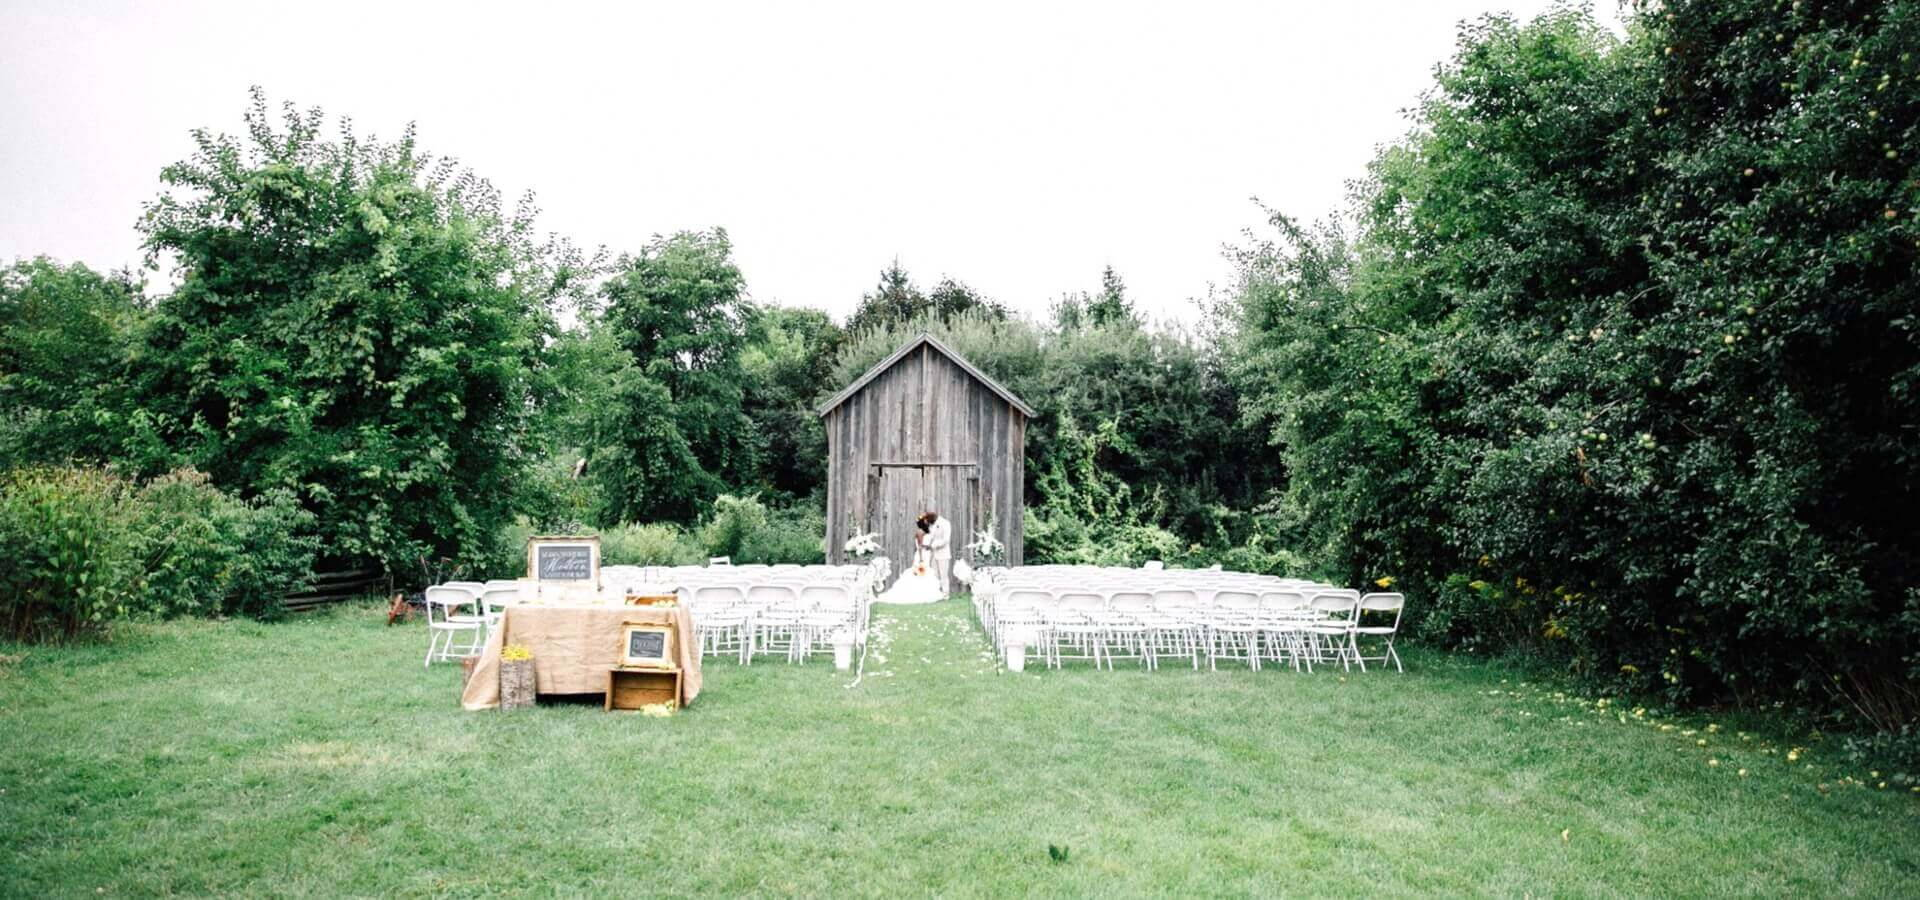 Hero image for Ruby and Charles' Southern Rustic Themed Wedding at Markham Museum